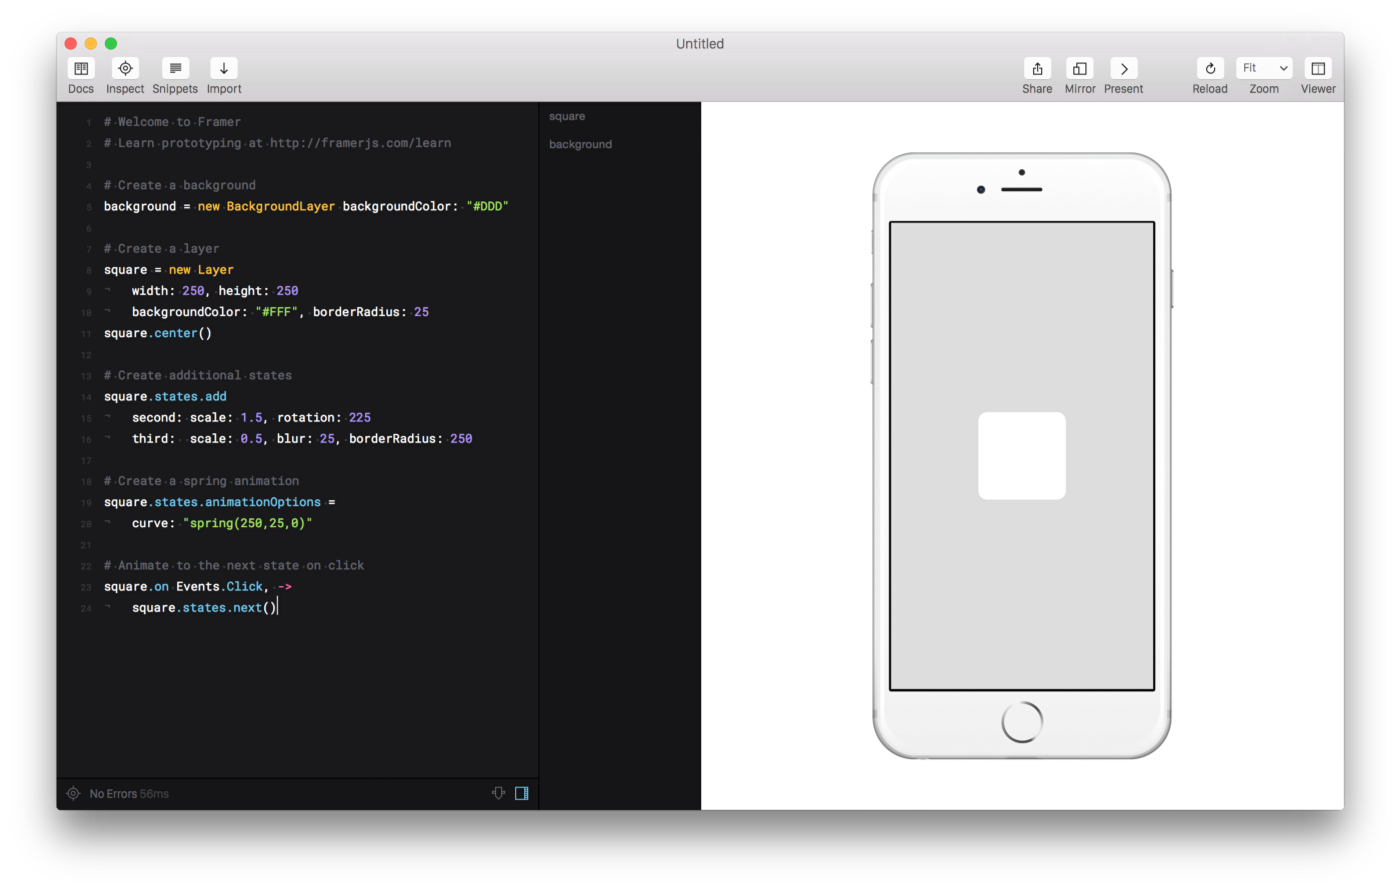 New to Framer? Just 3 Things to Get You Started - Framer